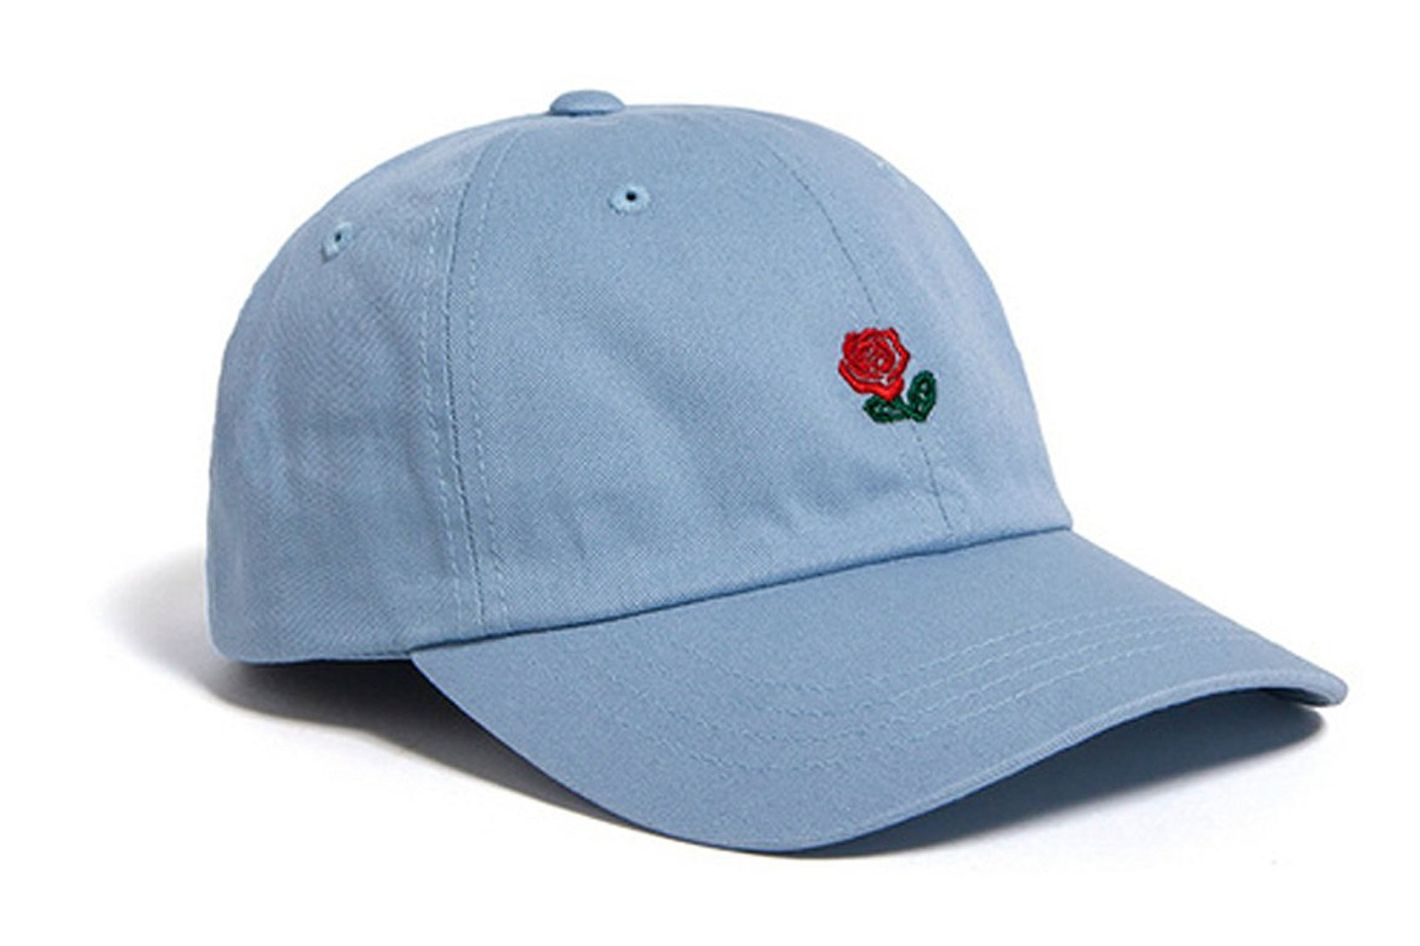 FGSS Unisex Rose Embroidered Adjustable Strapback